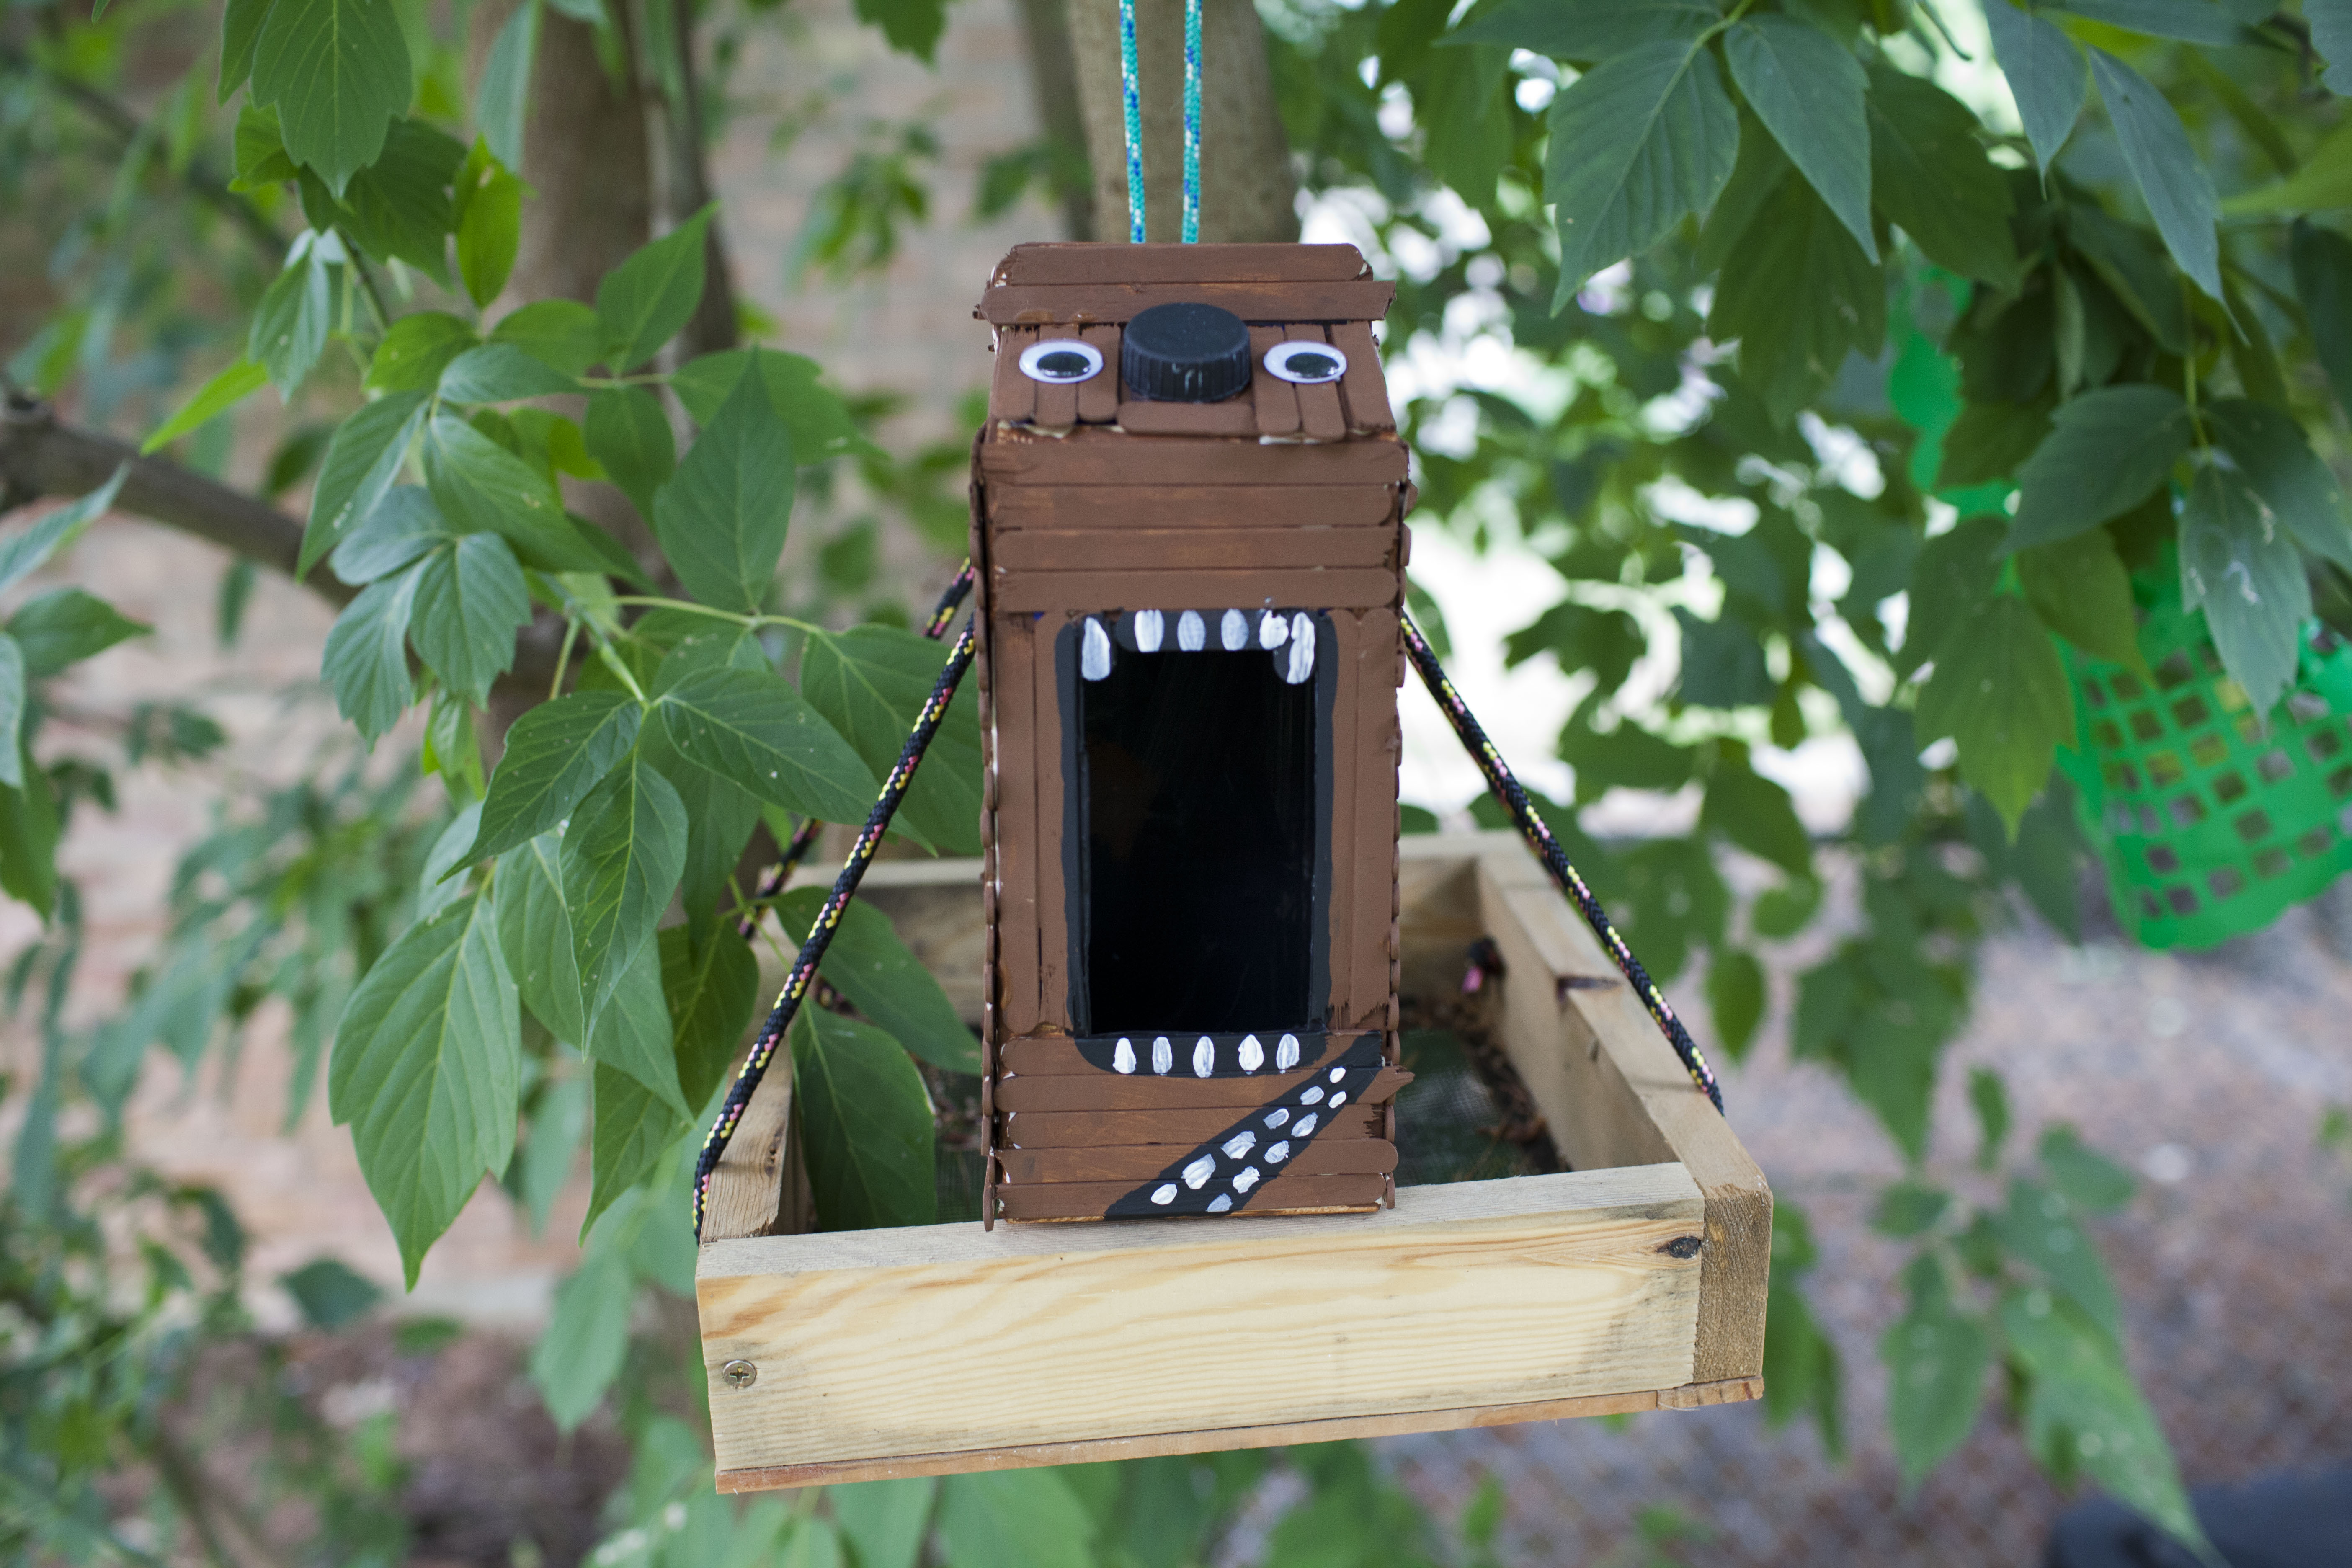 How to make a bird house - Wookie Birdhouse